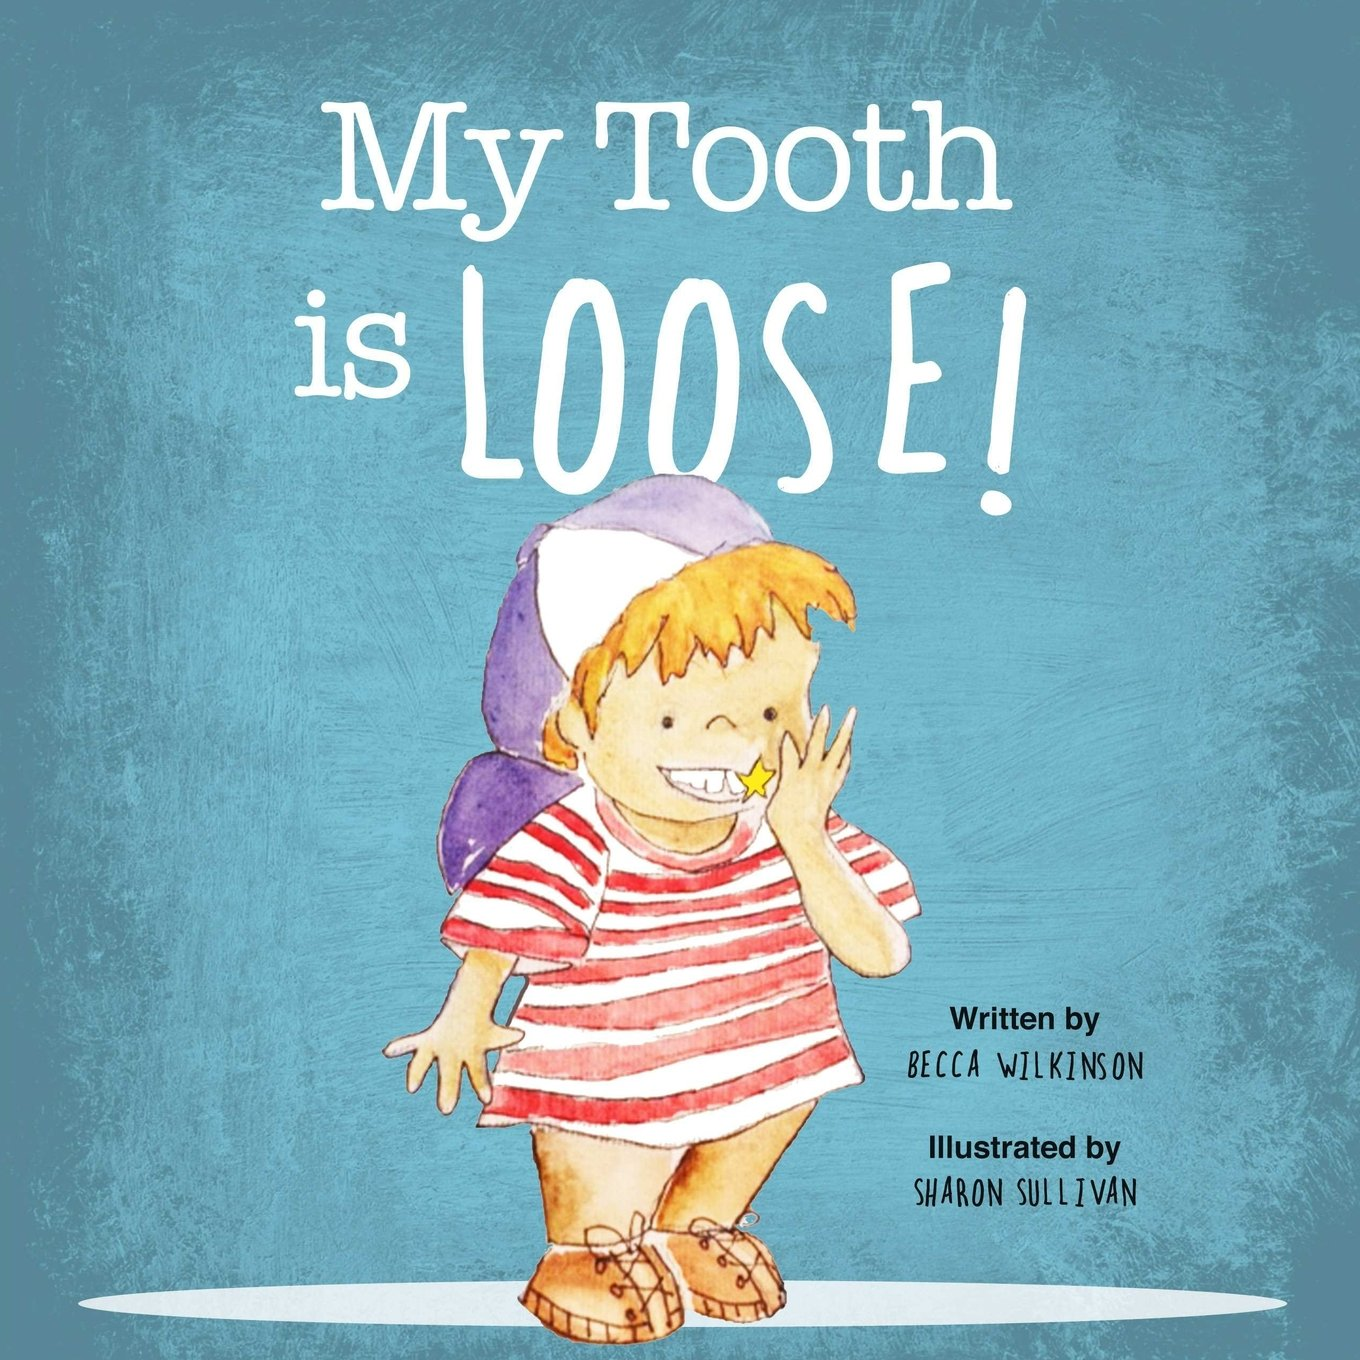 My Tooth is Loose!: Becca Wilkinson: 9781304839145: Amazon.com: Books